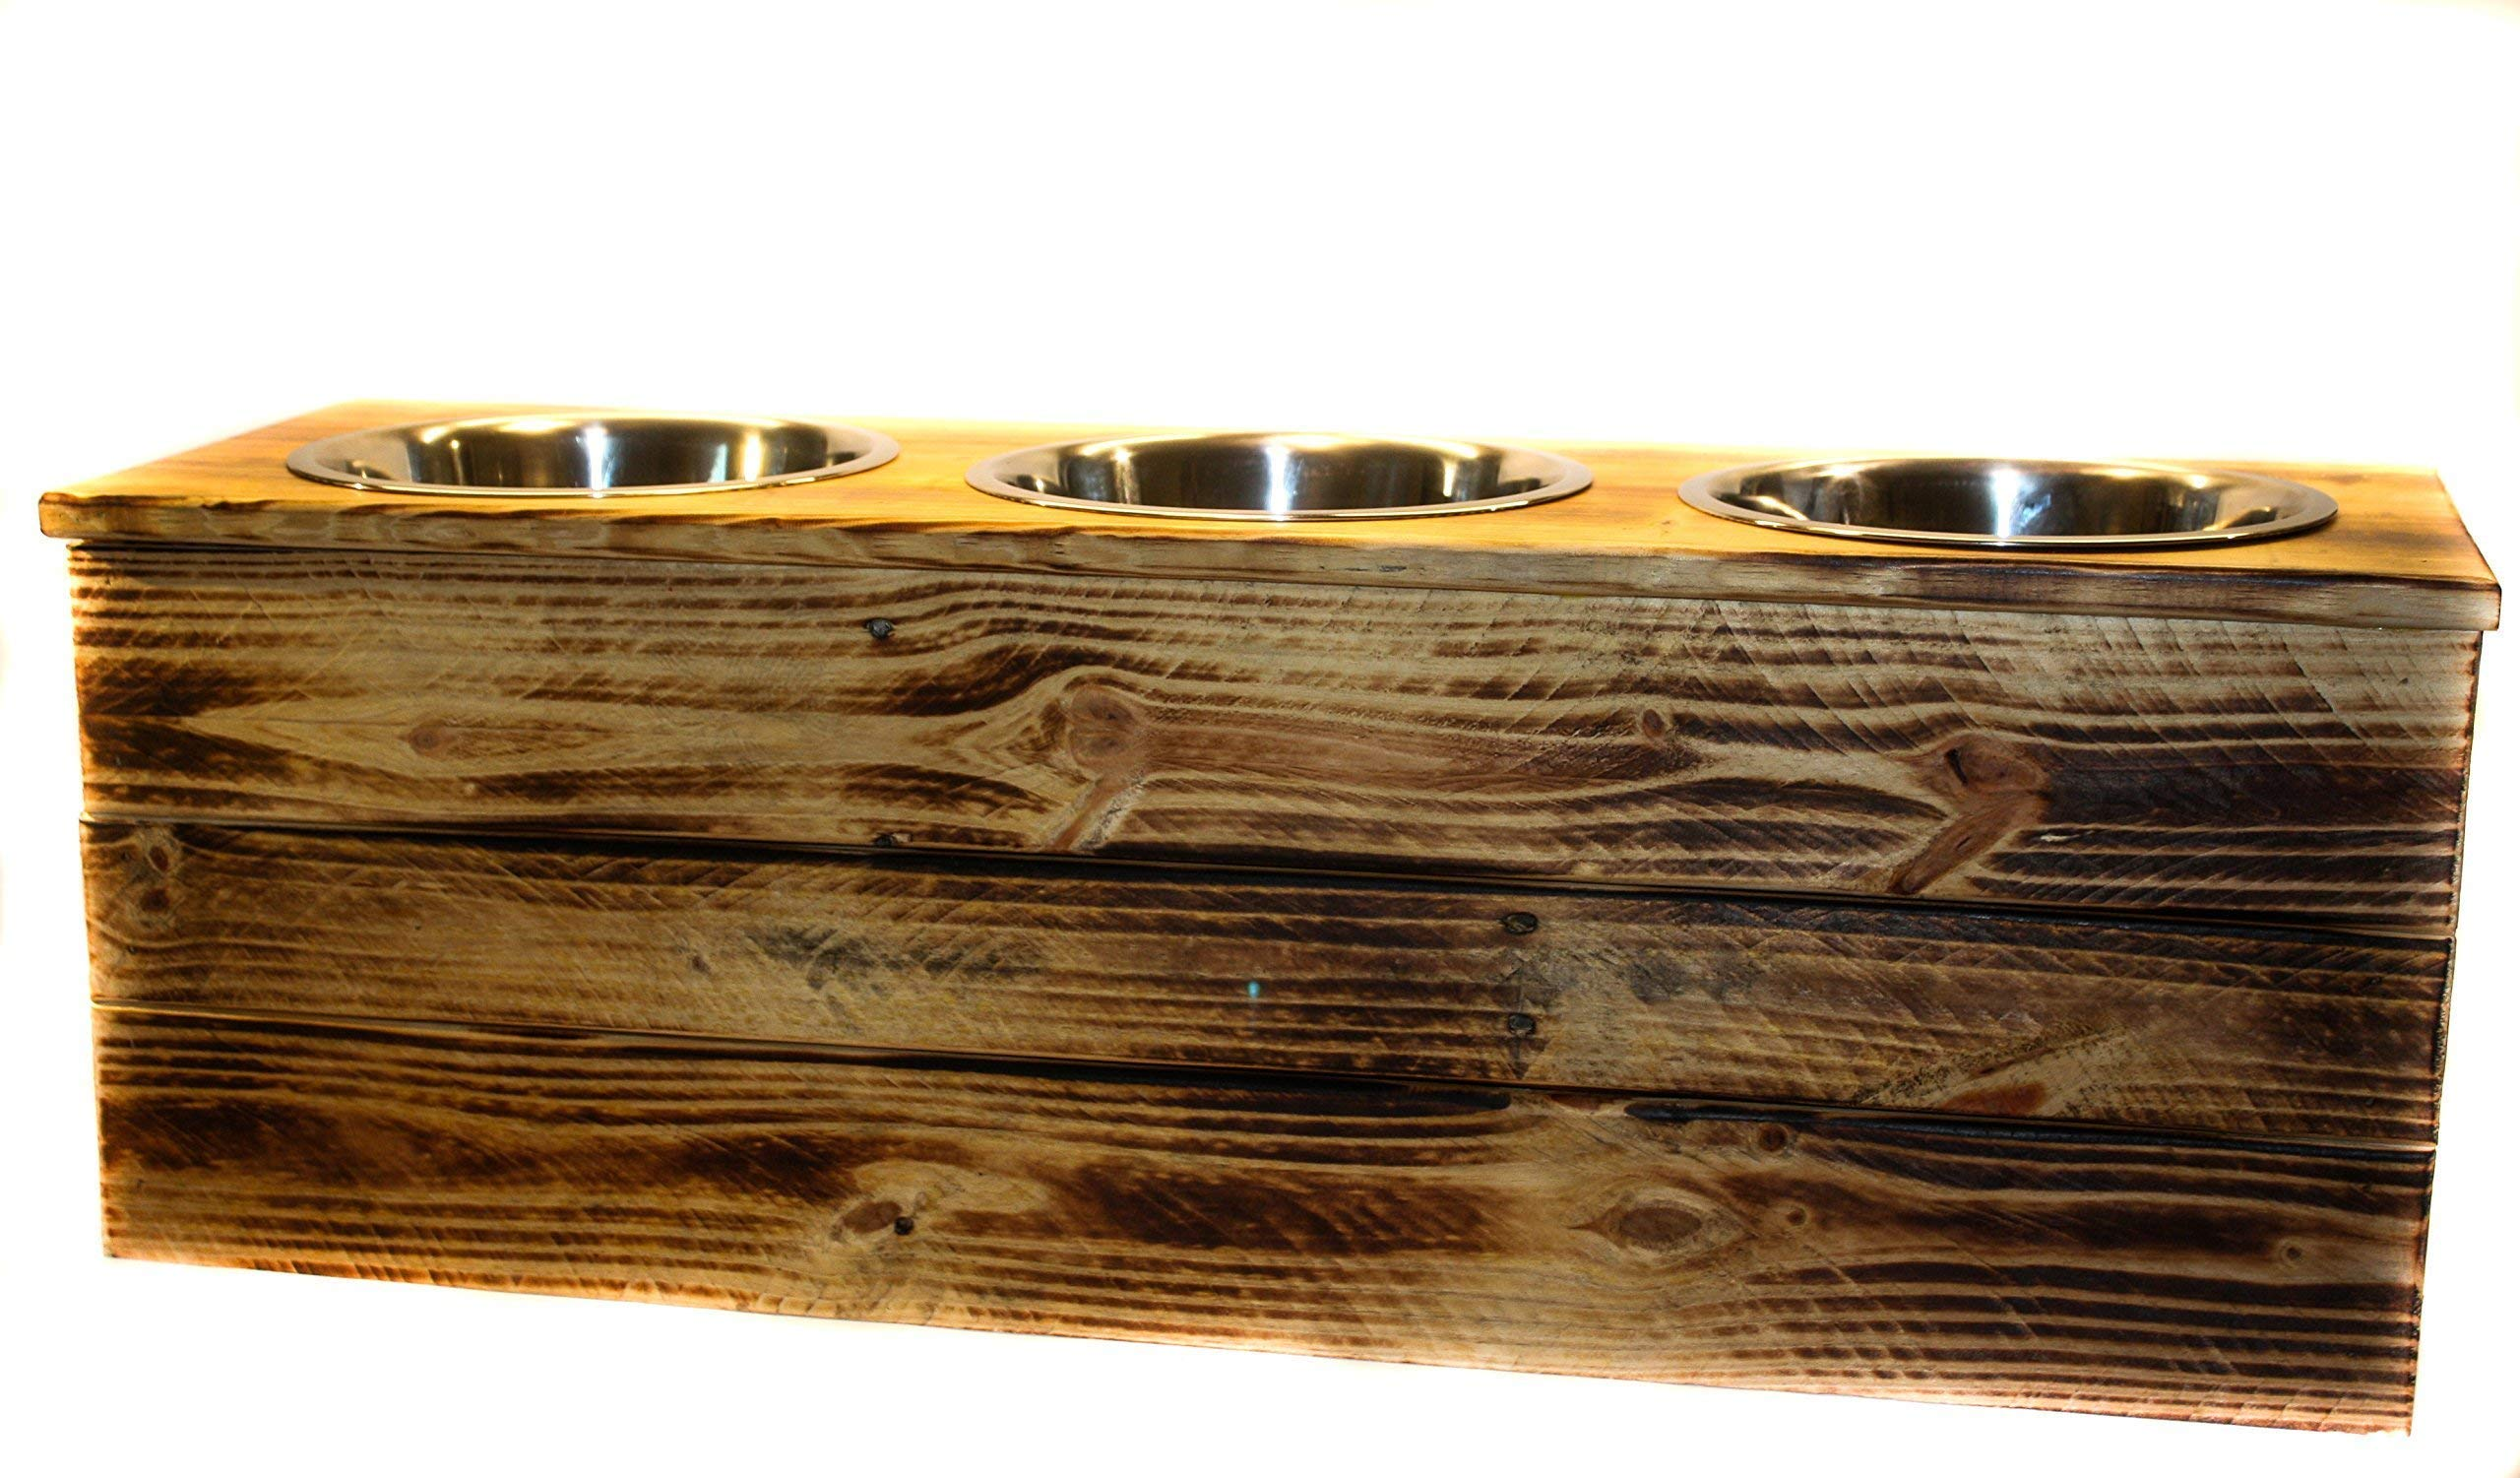 Elevated Extra Large Three Bowl Pet Feeder From Reclaimed Pallet Wood by 6 Dogs Decor